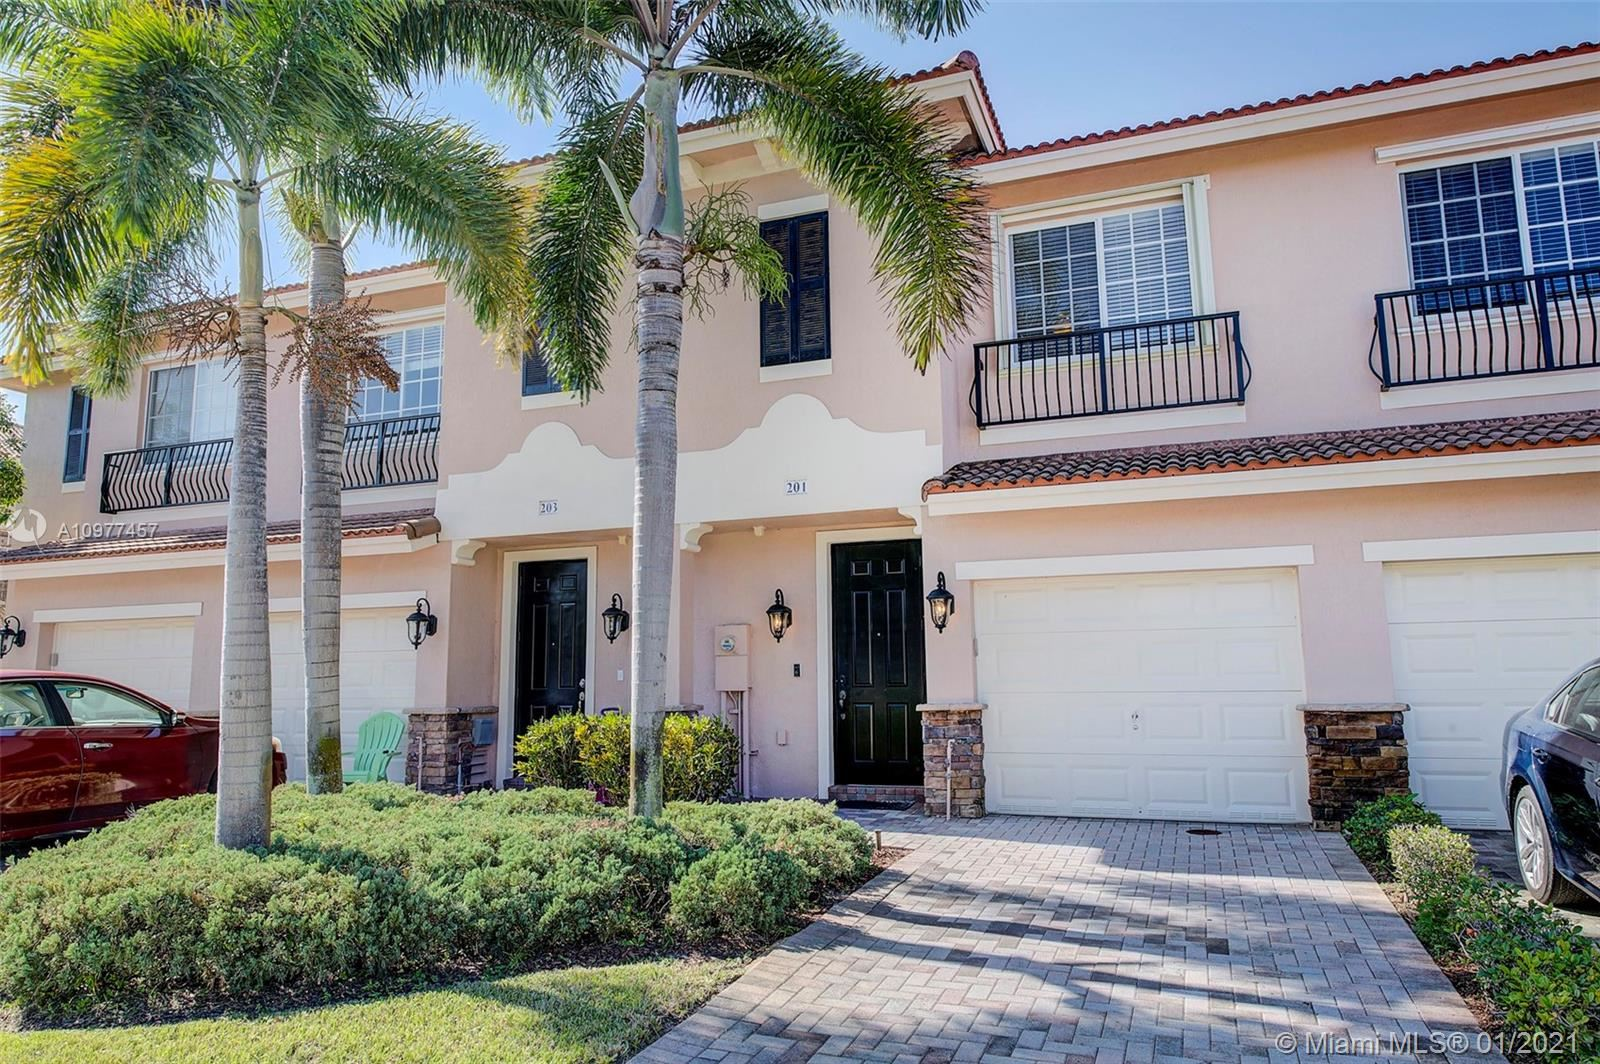 201 Las Brisas Cir, Sunrise, FL 33326 - #: A10977457